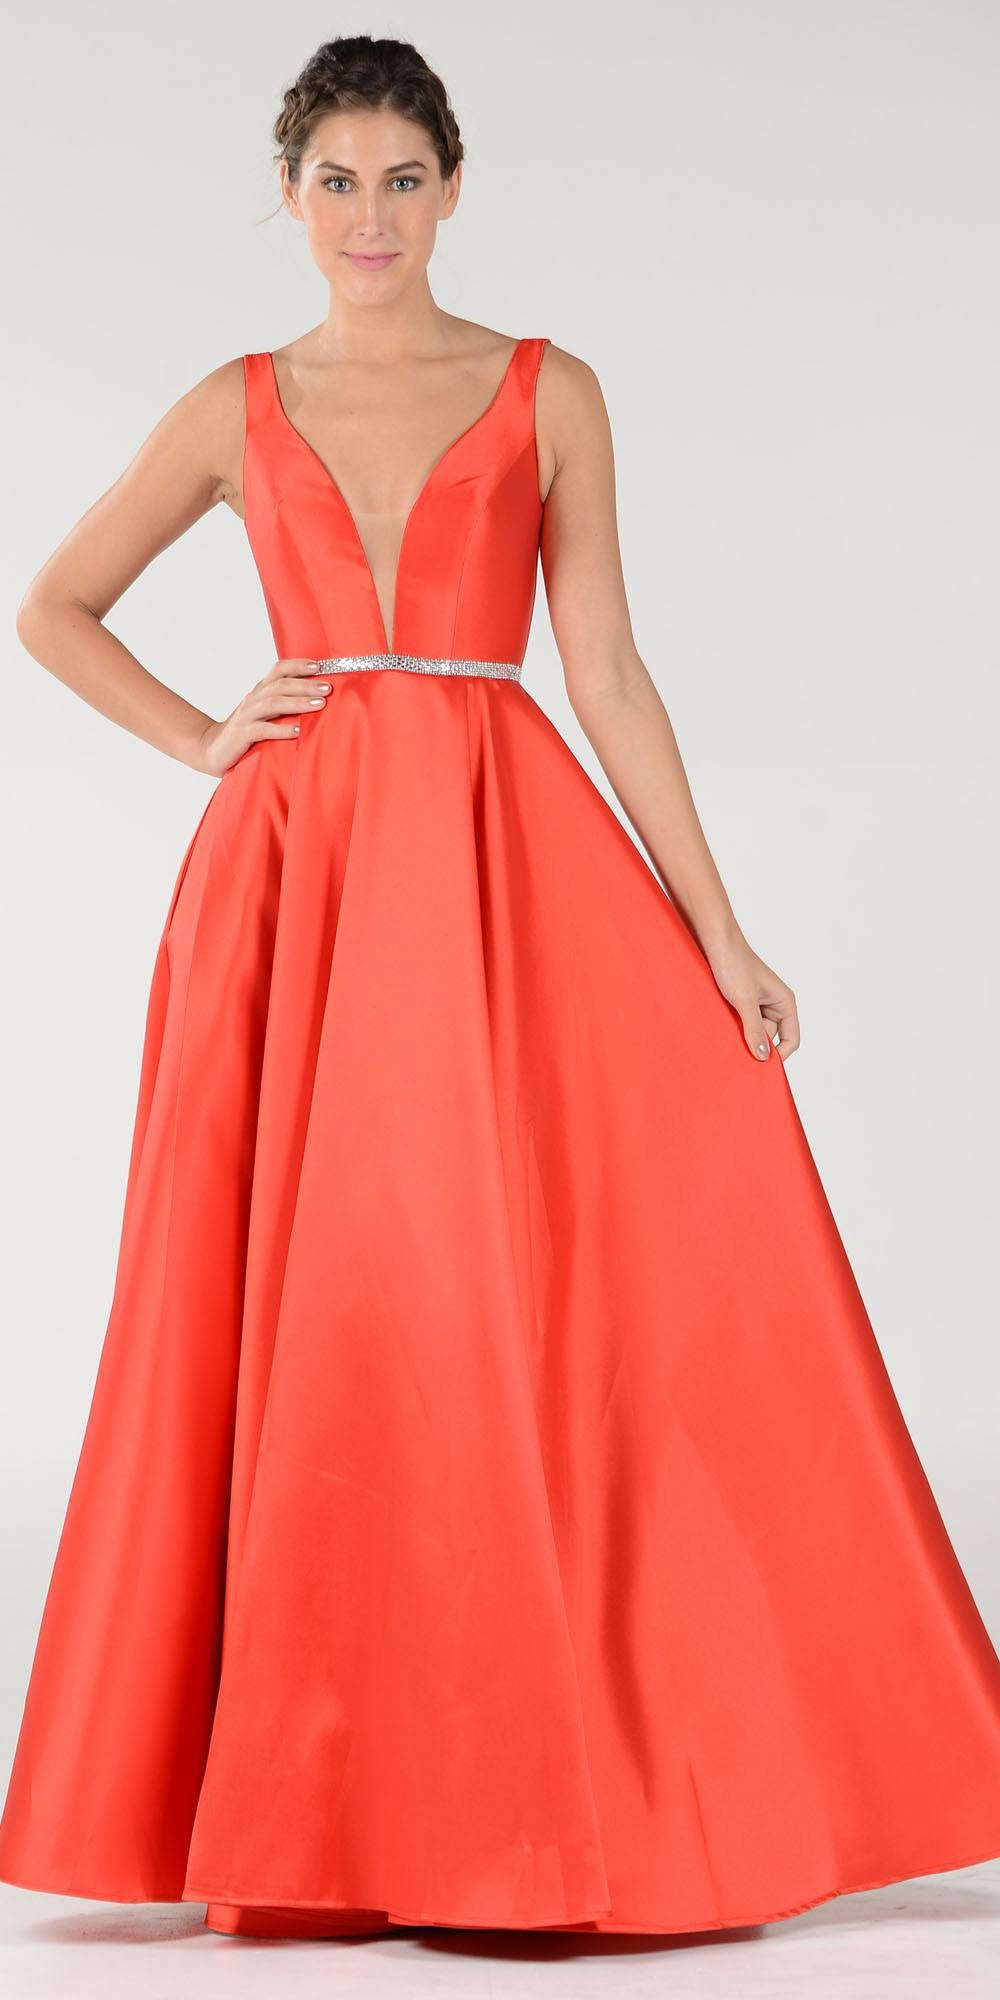 68cdd53a7a5e Red V-Neck A-Line Mikado Prom Gown with Embellished Waist. Tap to expand